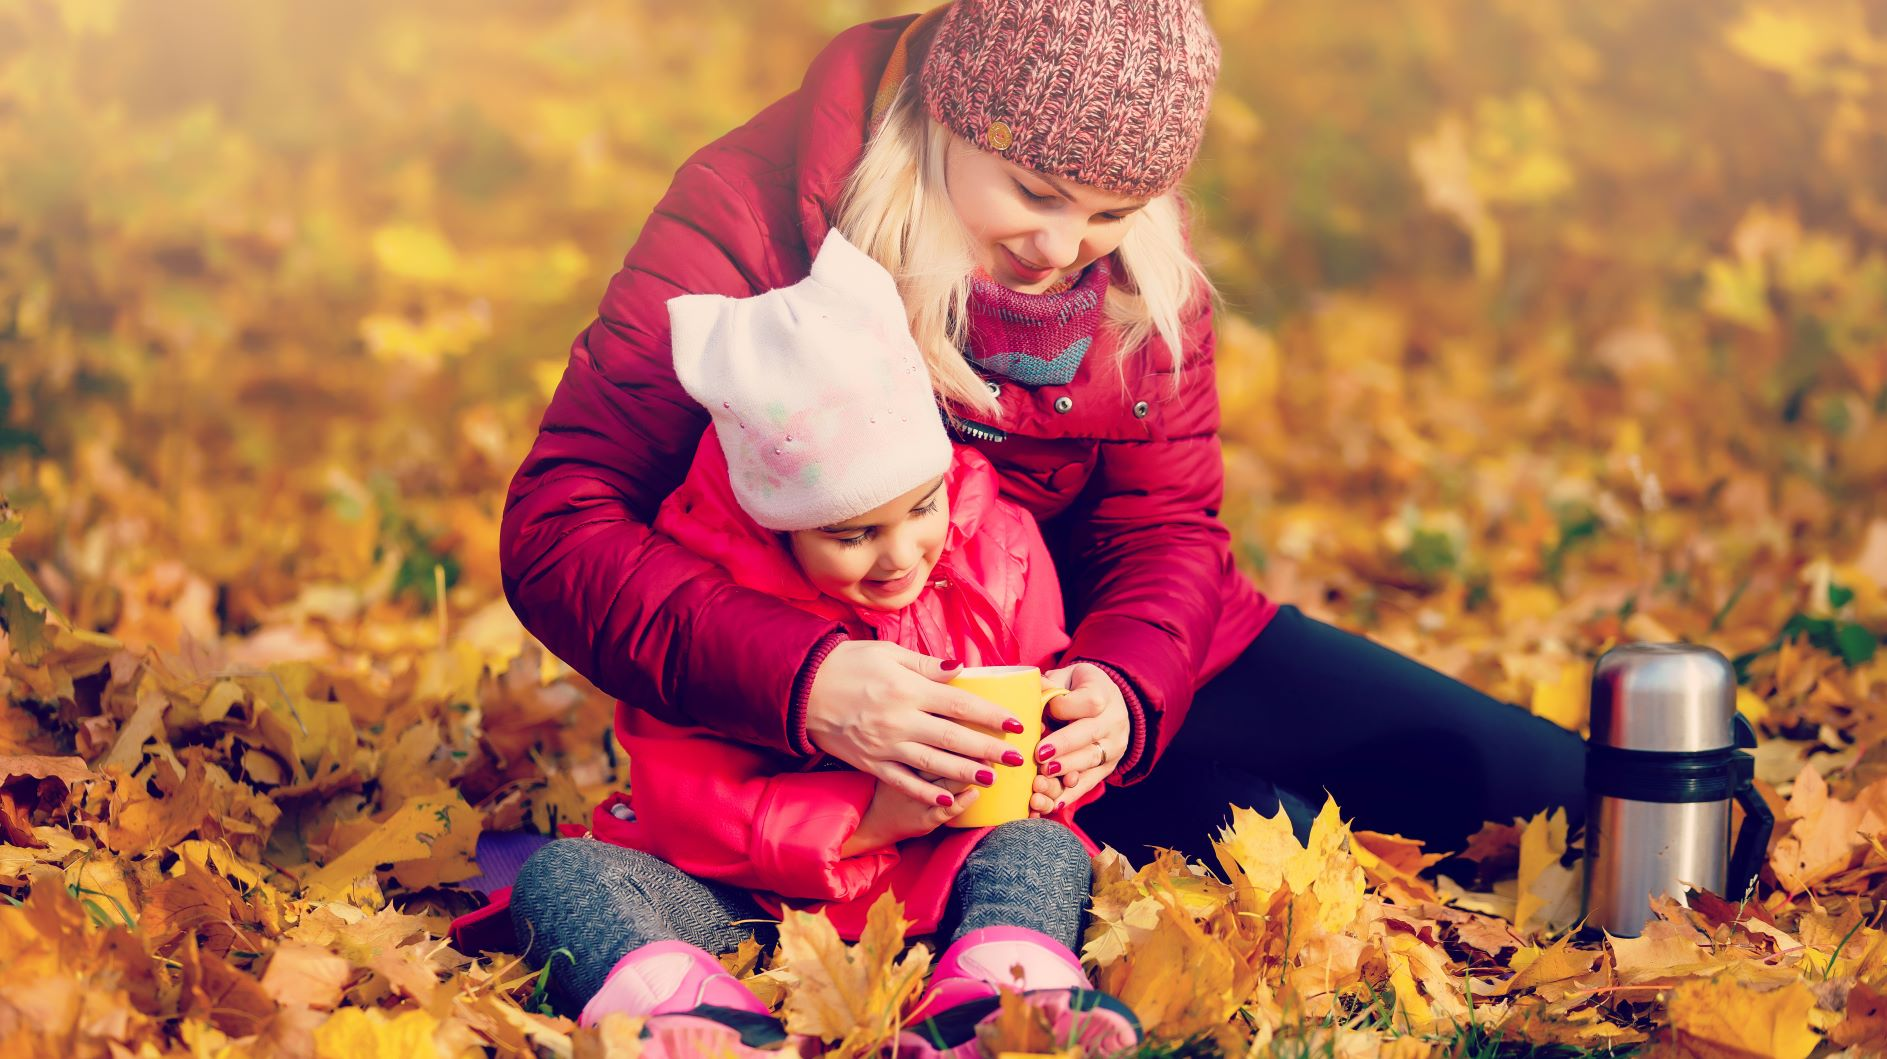 Mom and daughter in leaves with tea grow up